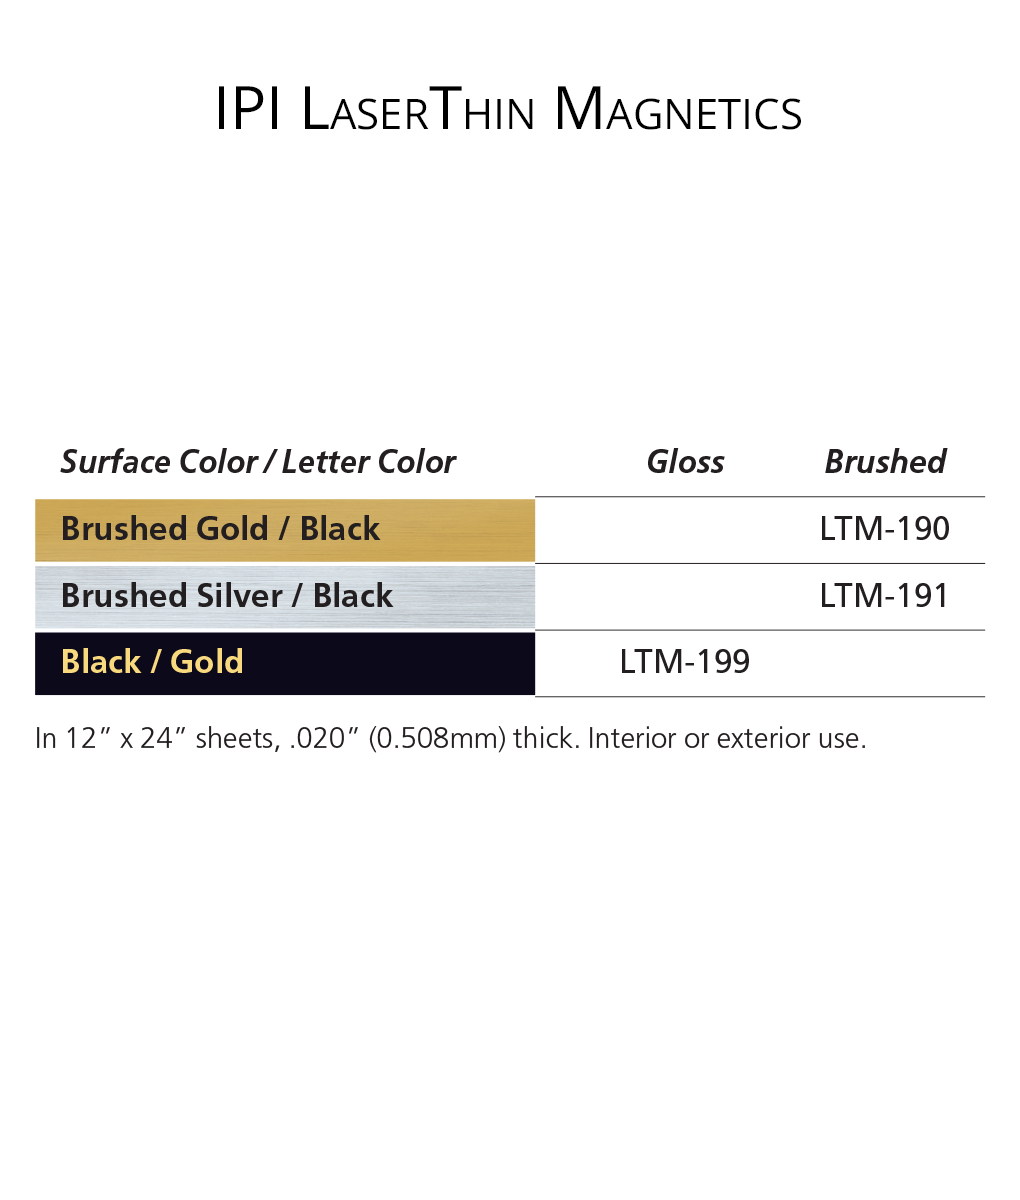 IPI LaserThin Magnetics - engraving material color options from Main Trophy Supply